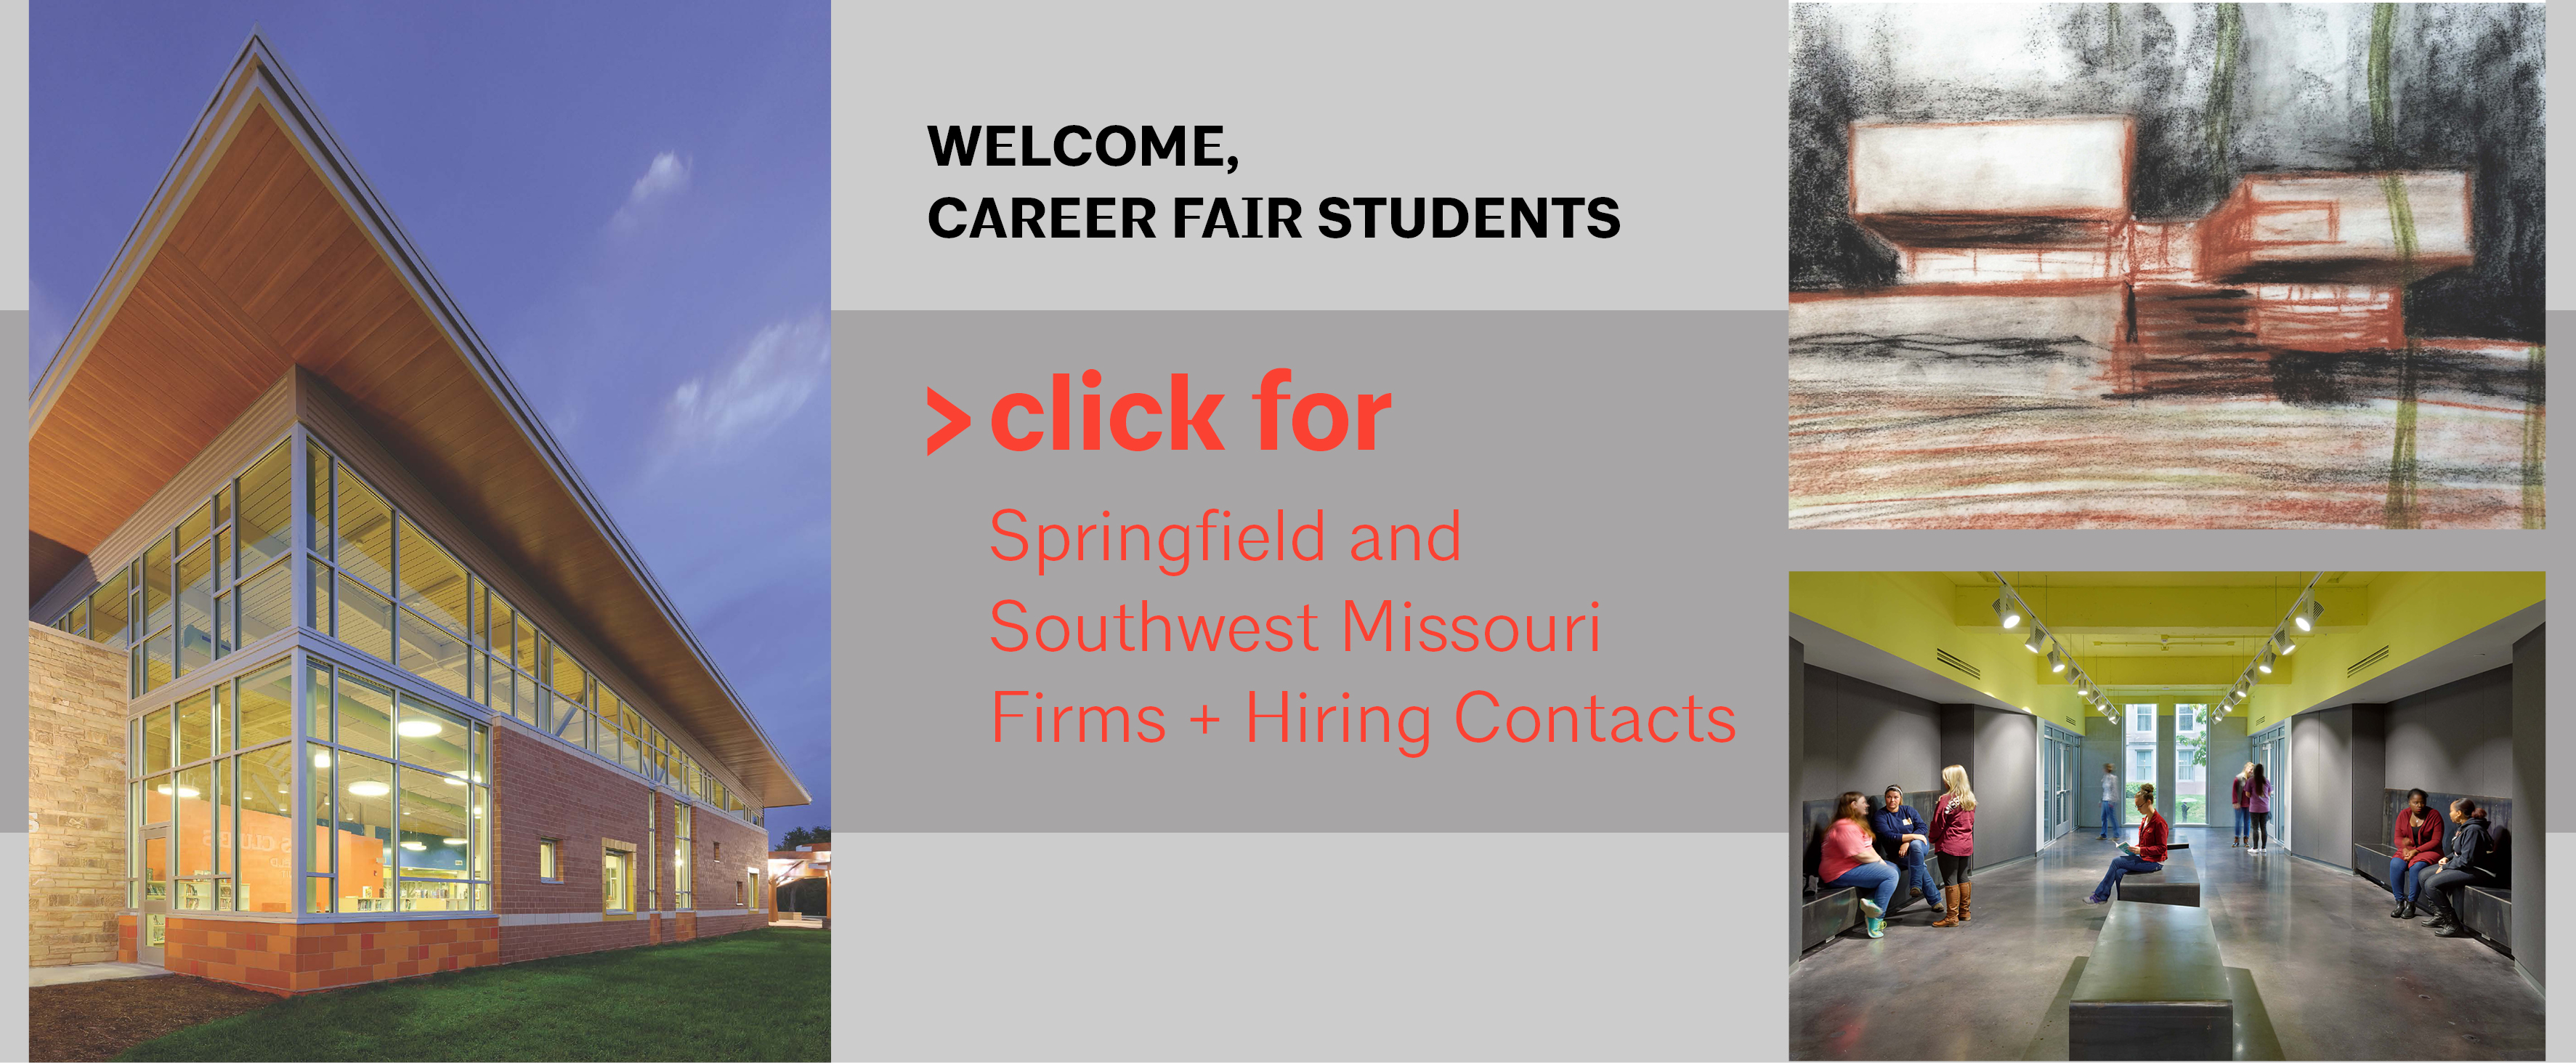 Welcome, Career Fair Students!